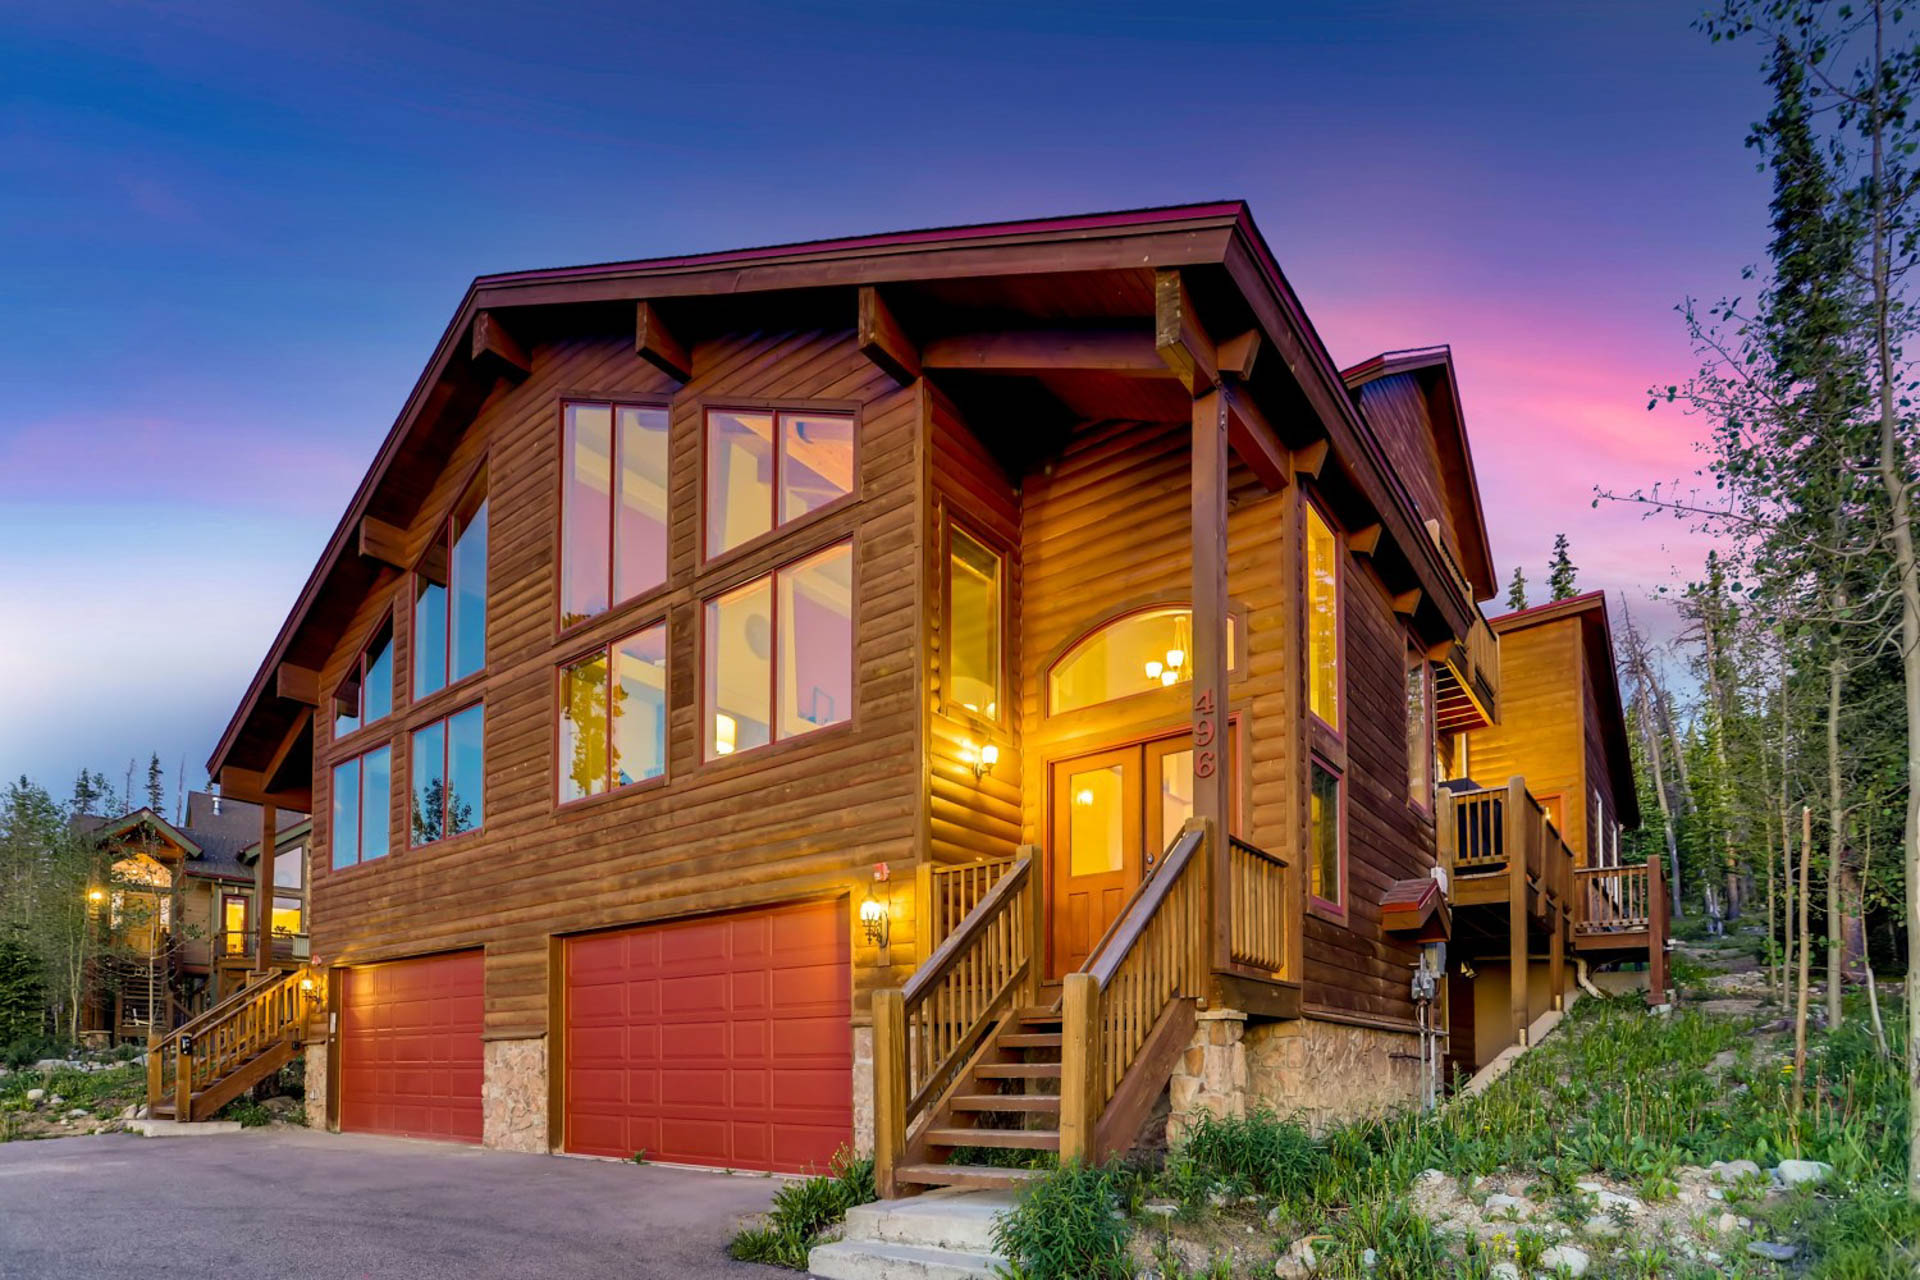 496_N_Fuller_Placer_Breckenridge_CO_-_Web_Quality_-_002_-_05_Exterior_Front_Entry.jpg